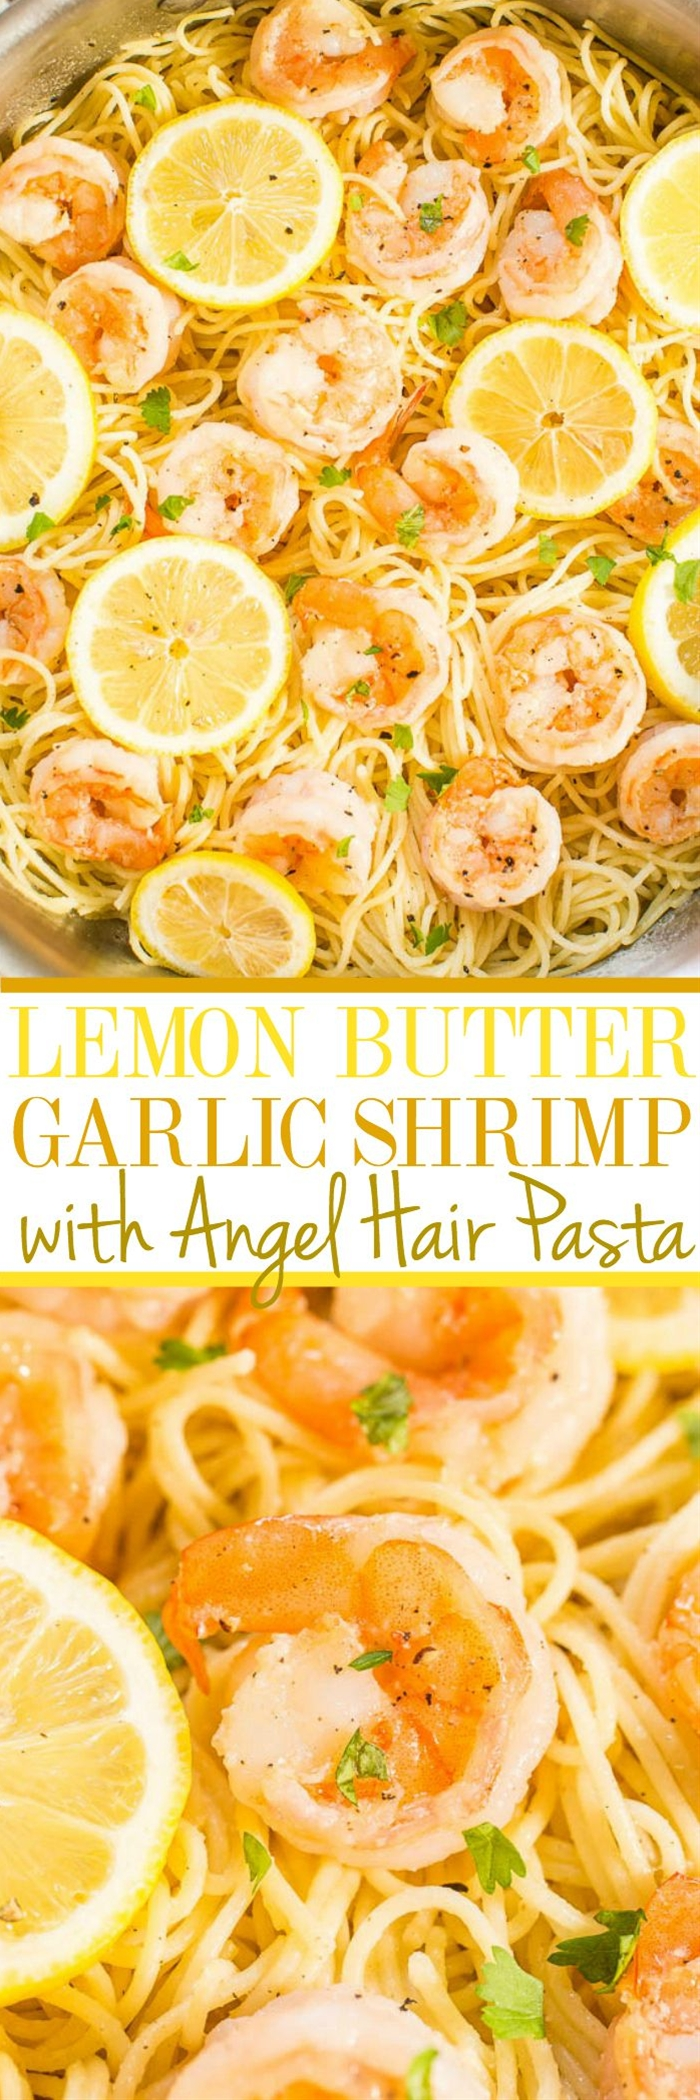 INGREDIENTS:\n  8 ounces angel hair pasta, cooked according to package directions (half of a 1-pound box)\n 1/2 cup unsalted butter (1 stick)\n 1 teaspoon garlic powder, or to taste\n 1 pound large shrimp, peeled, de-veined, and cleaned with tails off (I prefer 12-15 count shrimp)\n 1/2 teaspoon salt\n 1/2 teaspoon pepper\n 1/4 cup lemon juice\n 1 teaspoon lemon zest, optional